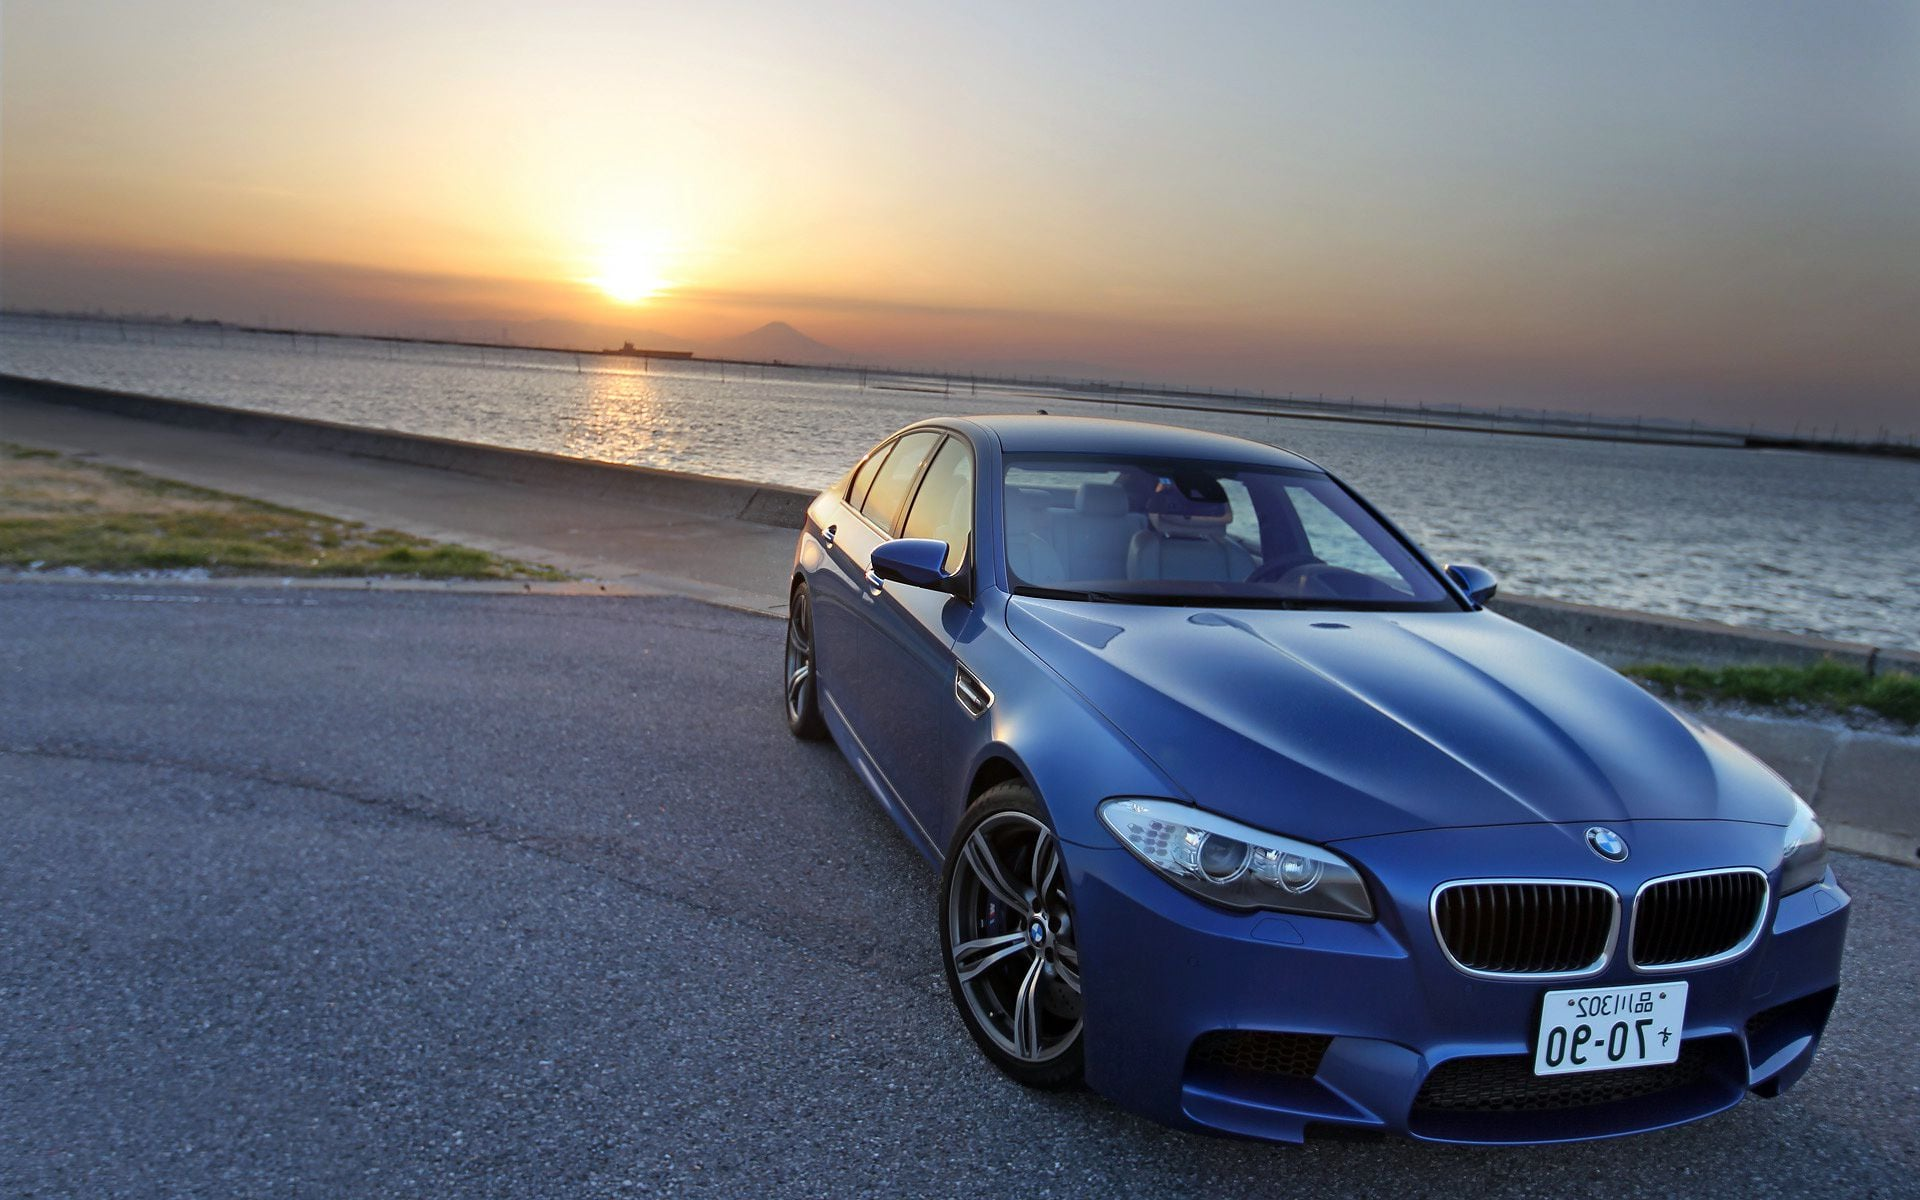 Download The Car Wallpaper 36 Bmw M5 F10 Wallpapers Hd High Quality Download